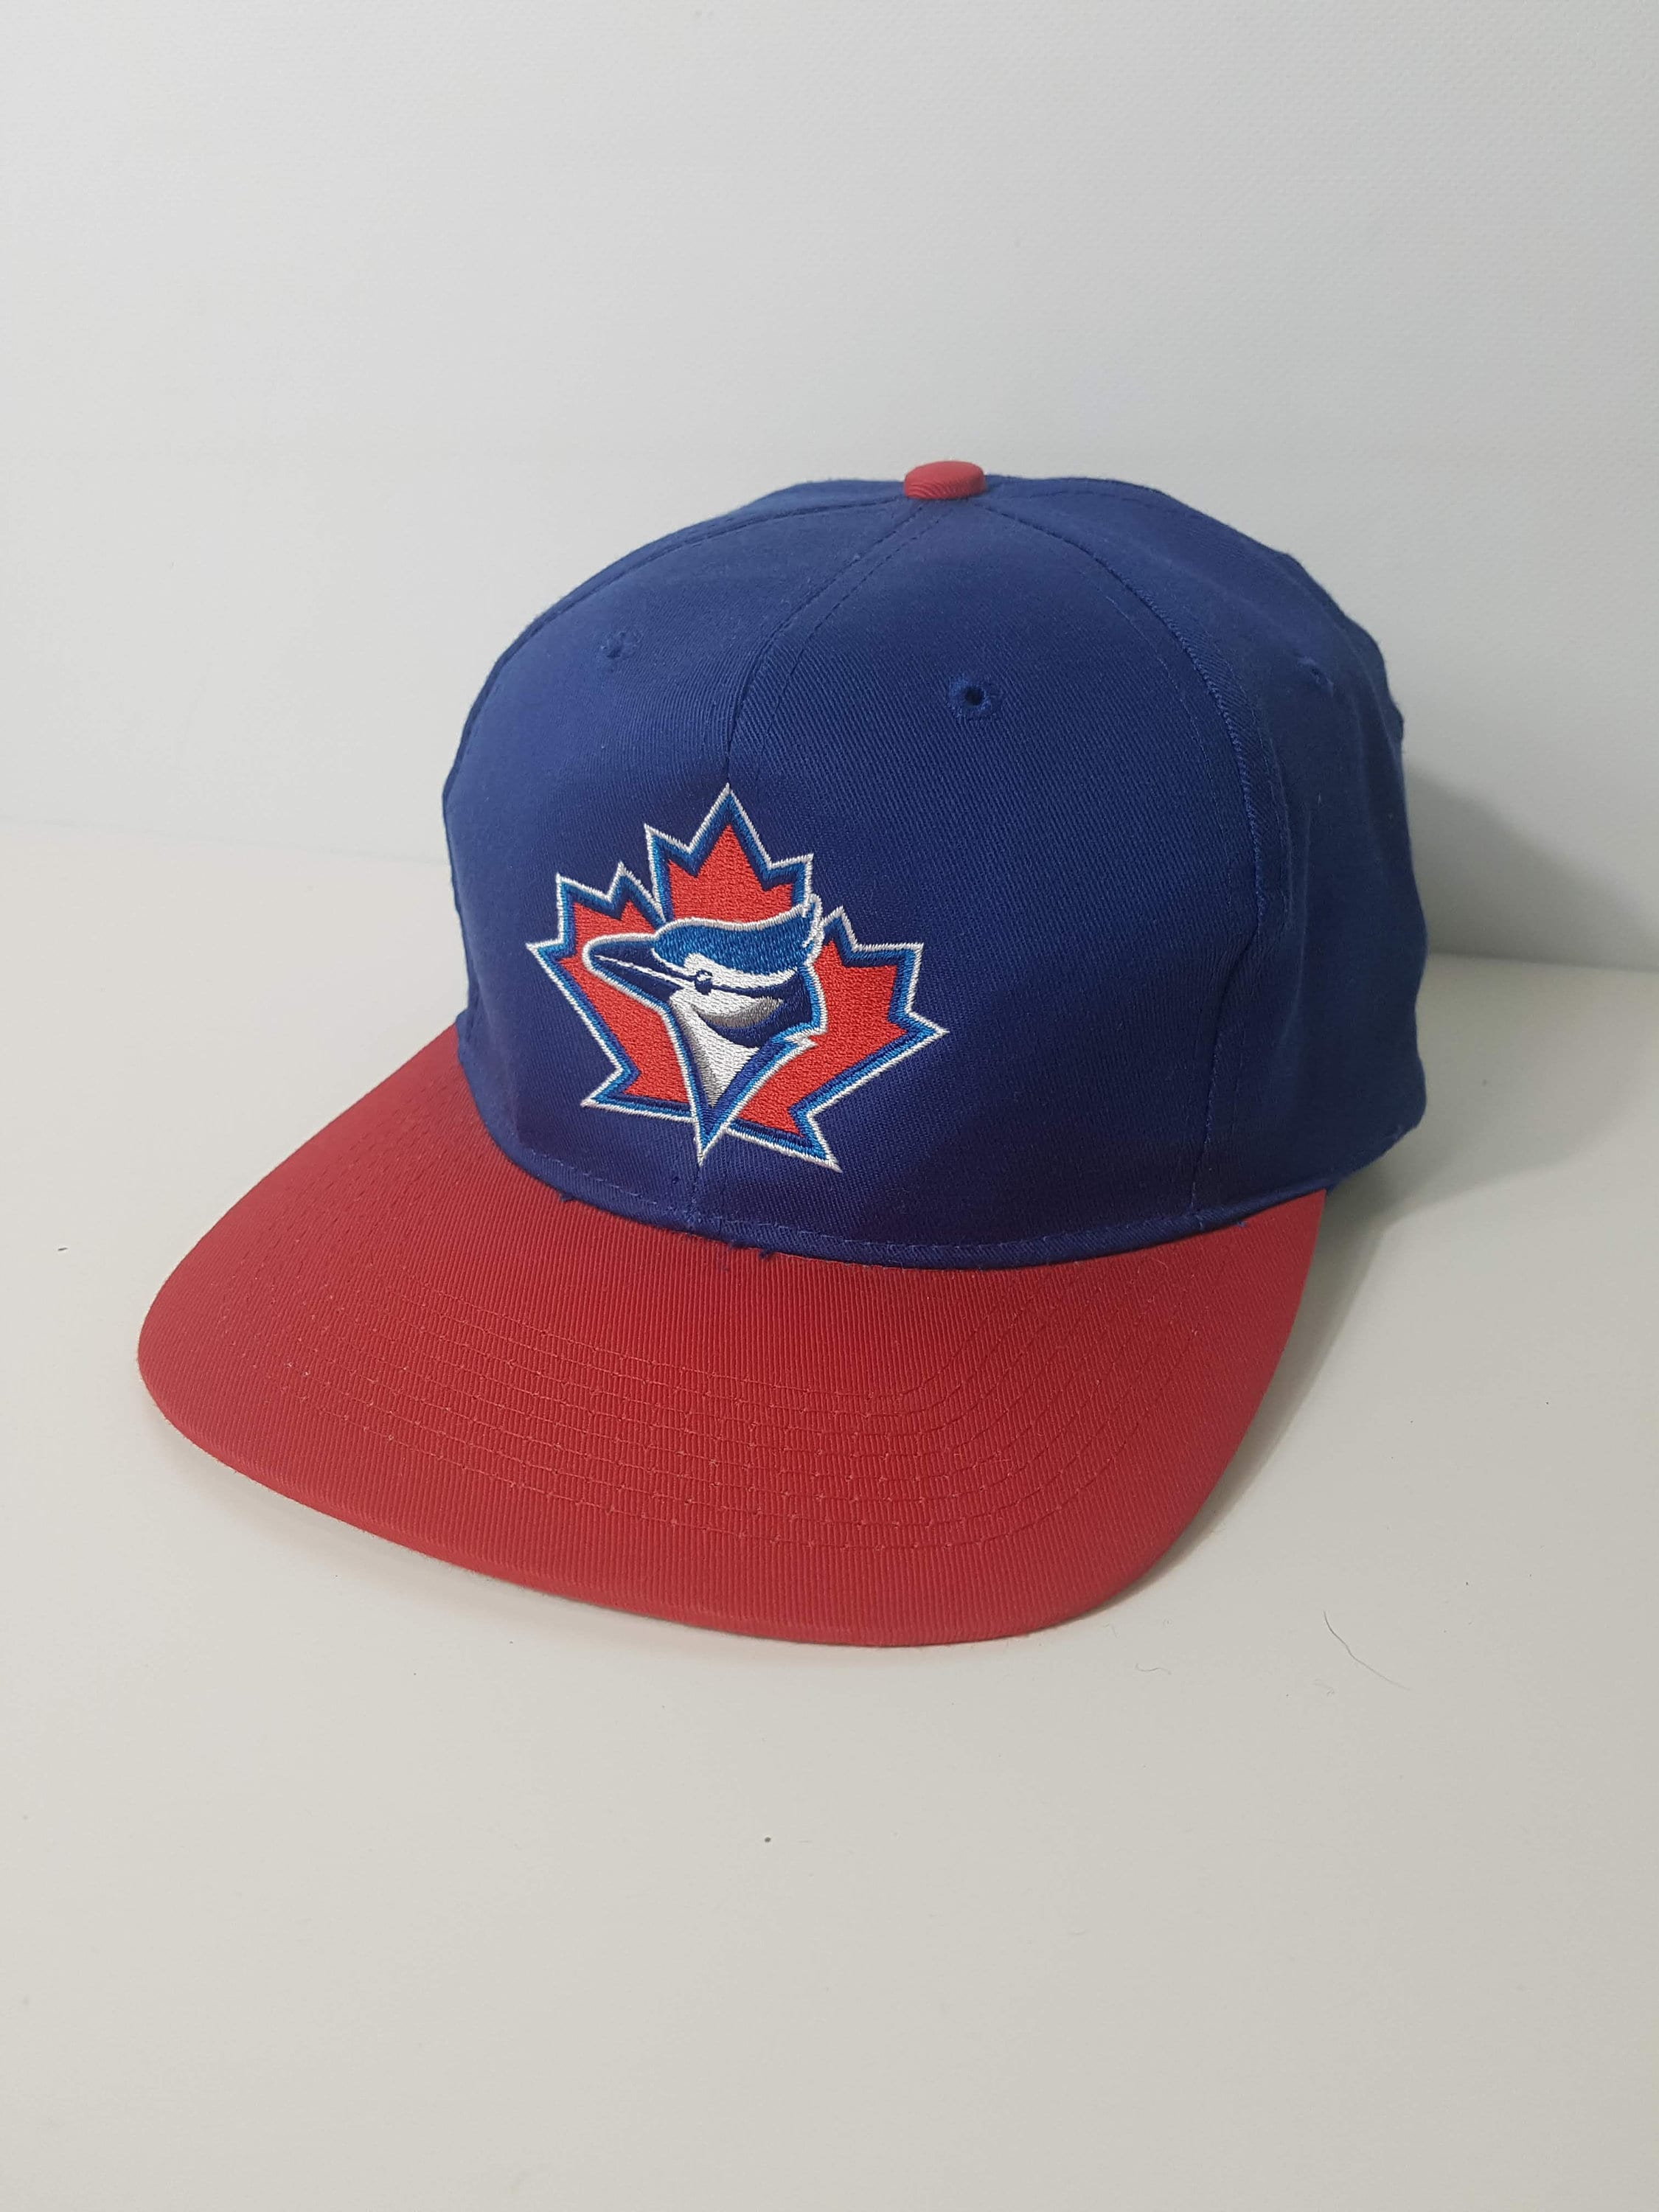 newest 25123 63ed4 ... diamond era 59fifty fitted hat navy 905e7 f9708  closeout 1990s vintage  toronto blue jays snapback hat starter blue jays baseball cap 80s 90s hip